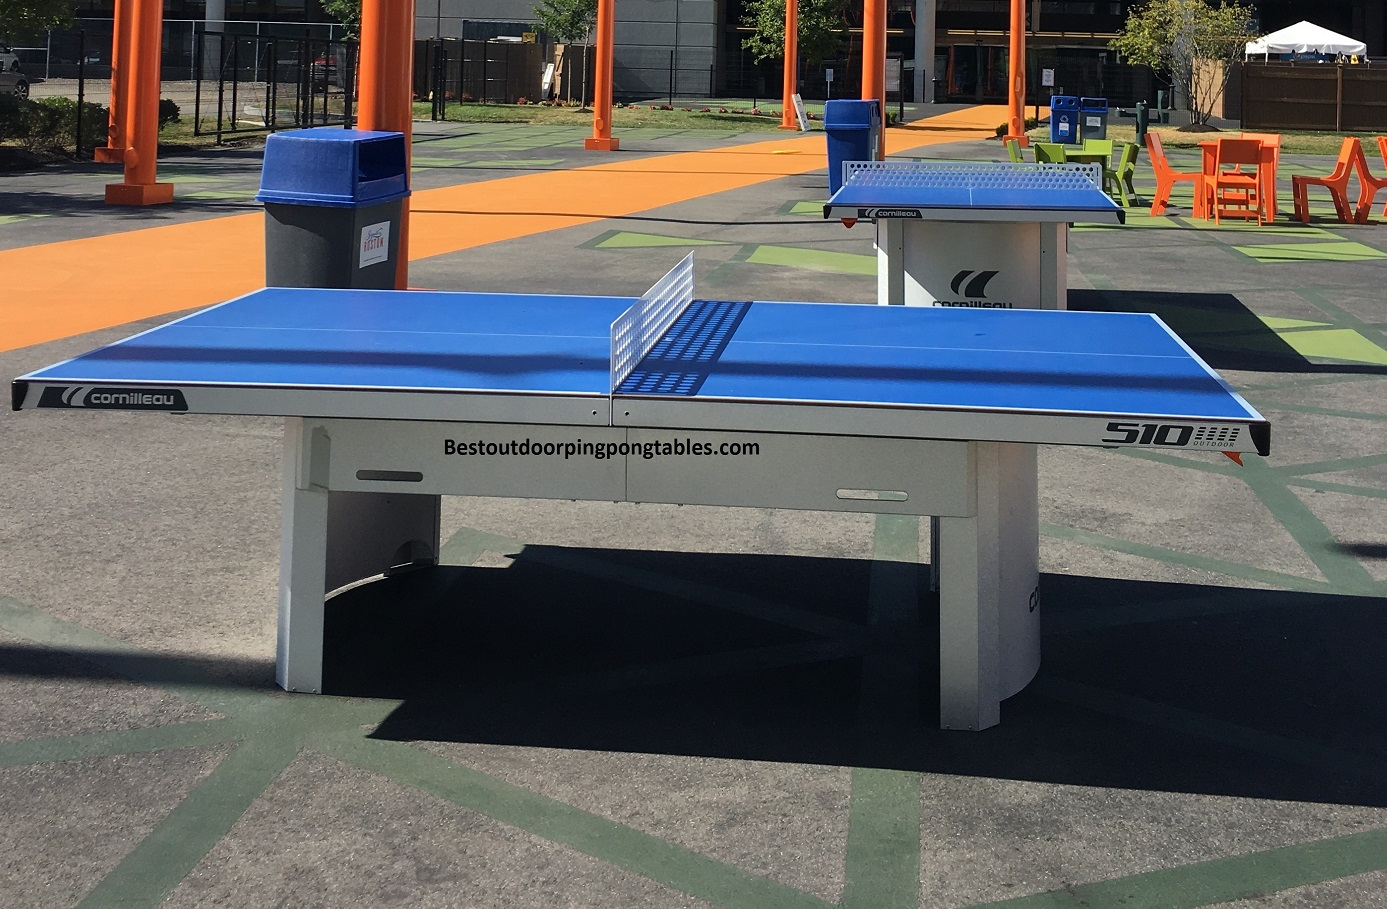 Cornilleau 510 pro outdoor table review - Table de ping pong cornilleau 440 ...